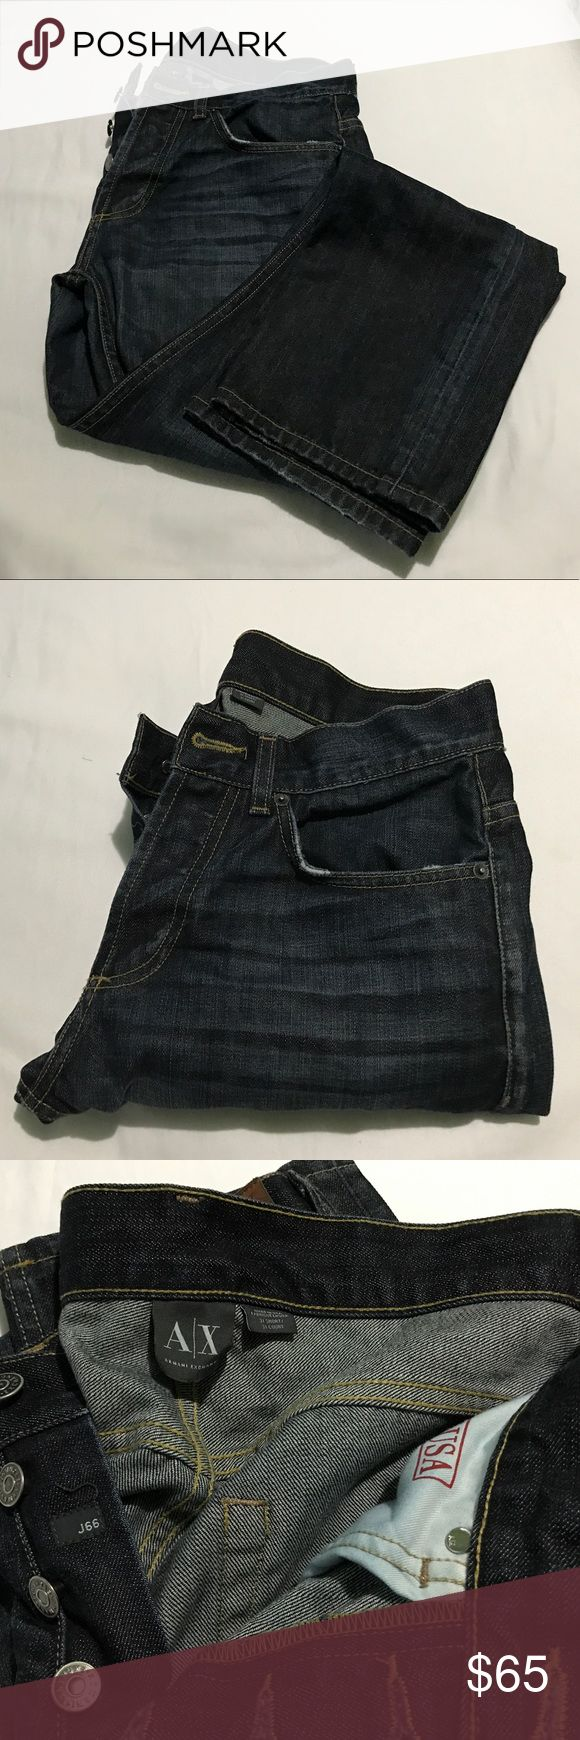 Men's A|X Armani Exchange Jeans Very high quality jeans. Looks and feel expensive. Button fly, size 31 x 30. Only wore this a couple times. In excellent shape and quality. A/X Armani Exchange Jeans Straight